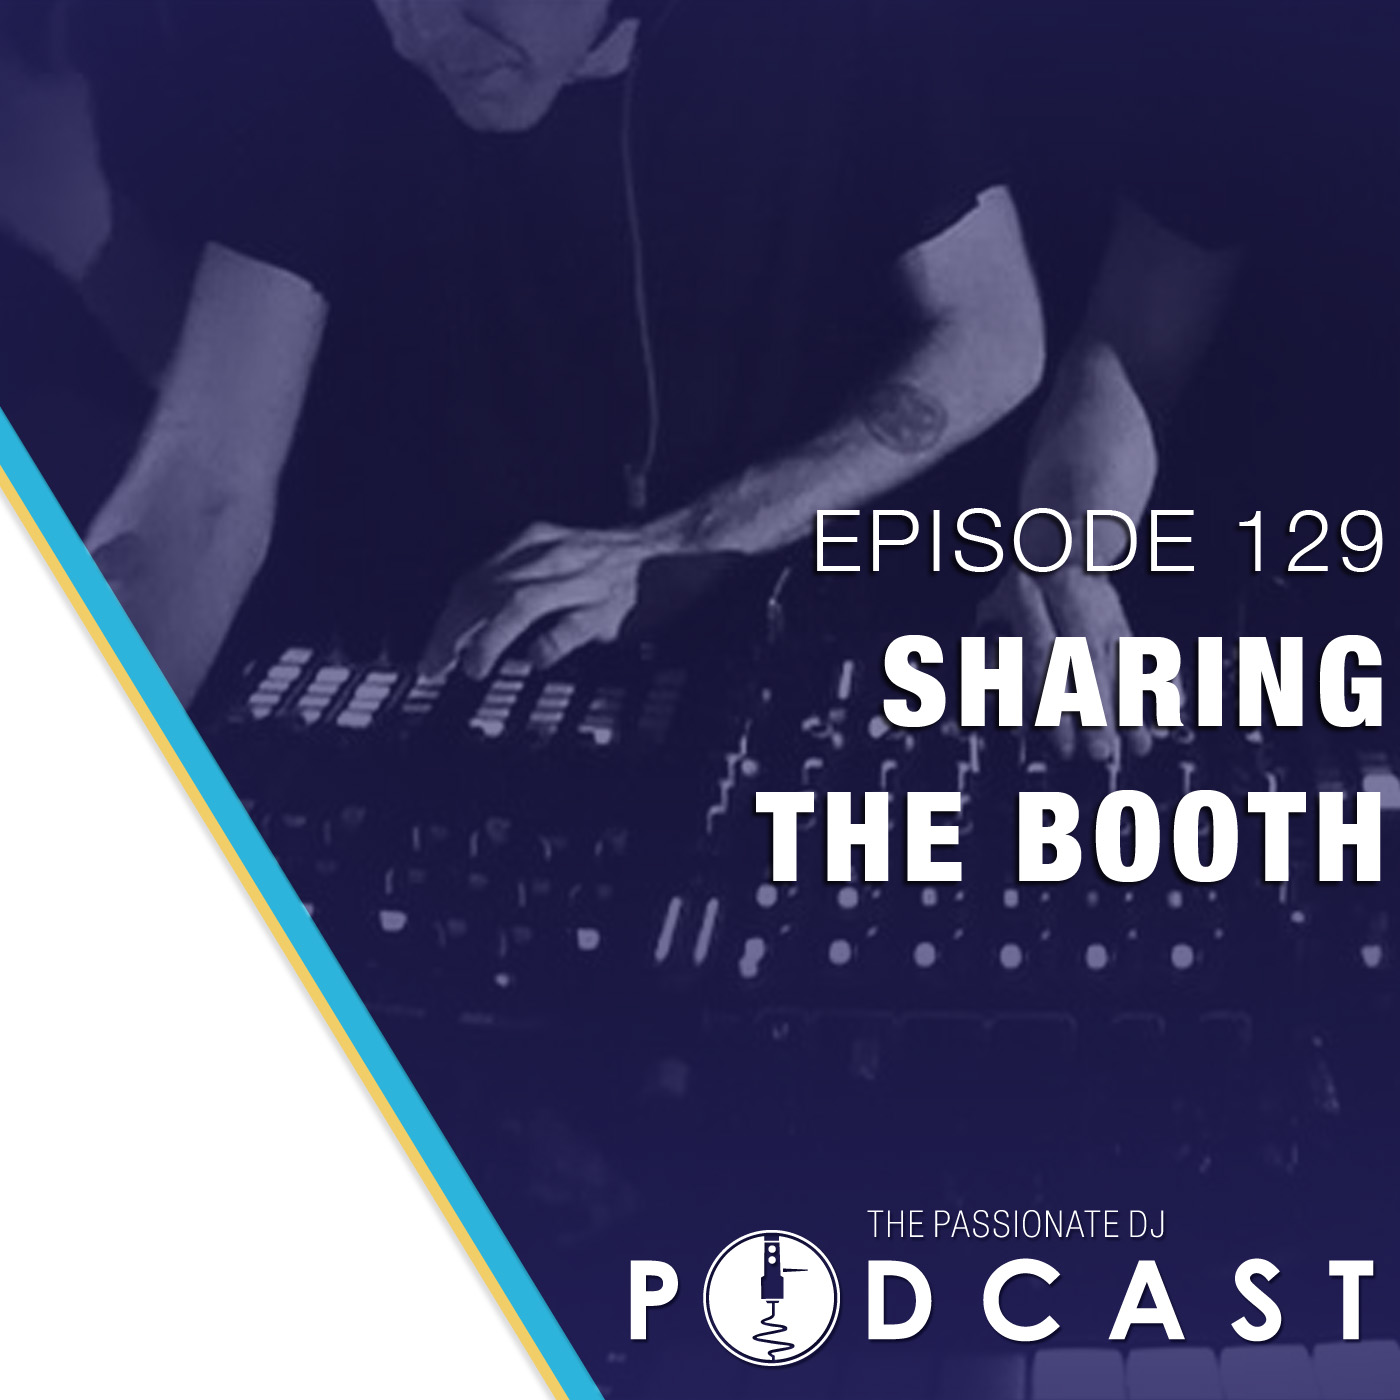 Episode 129: Sharing the Booth